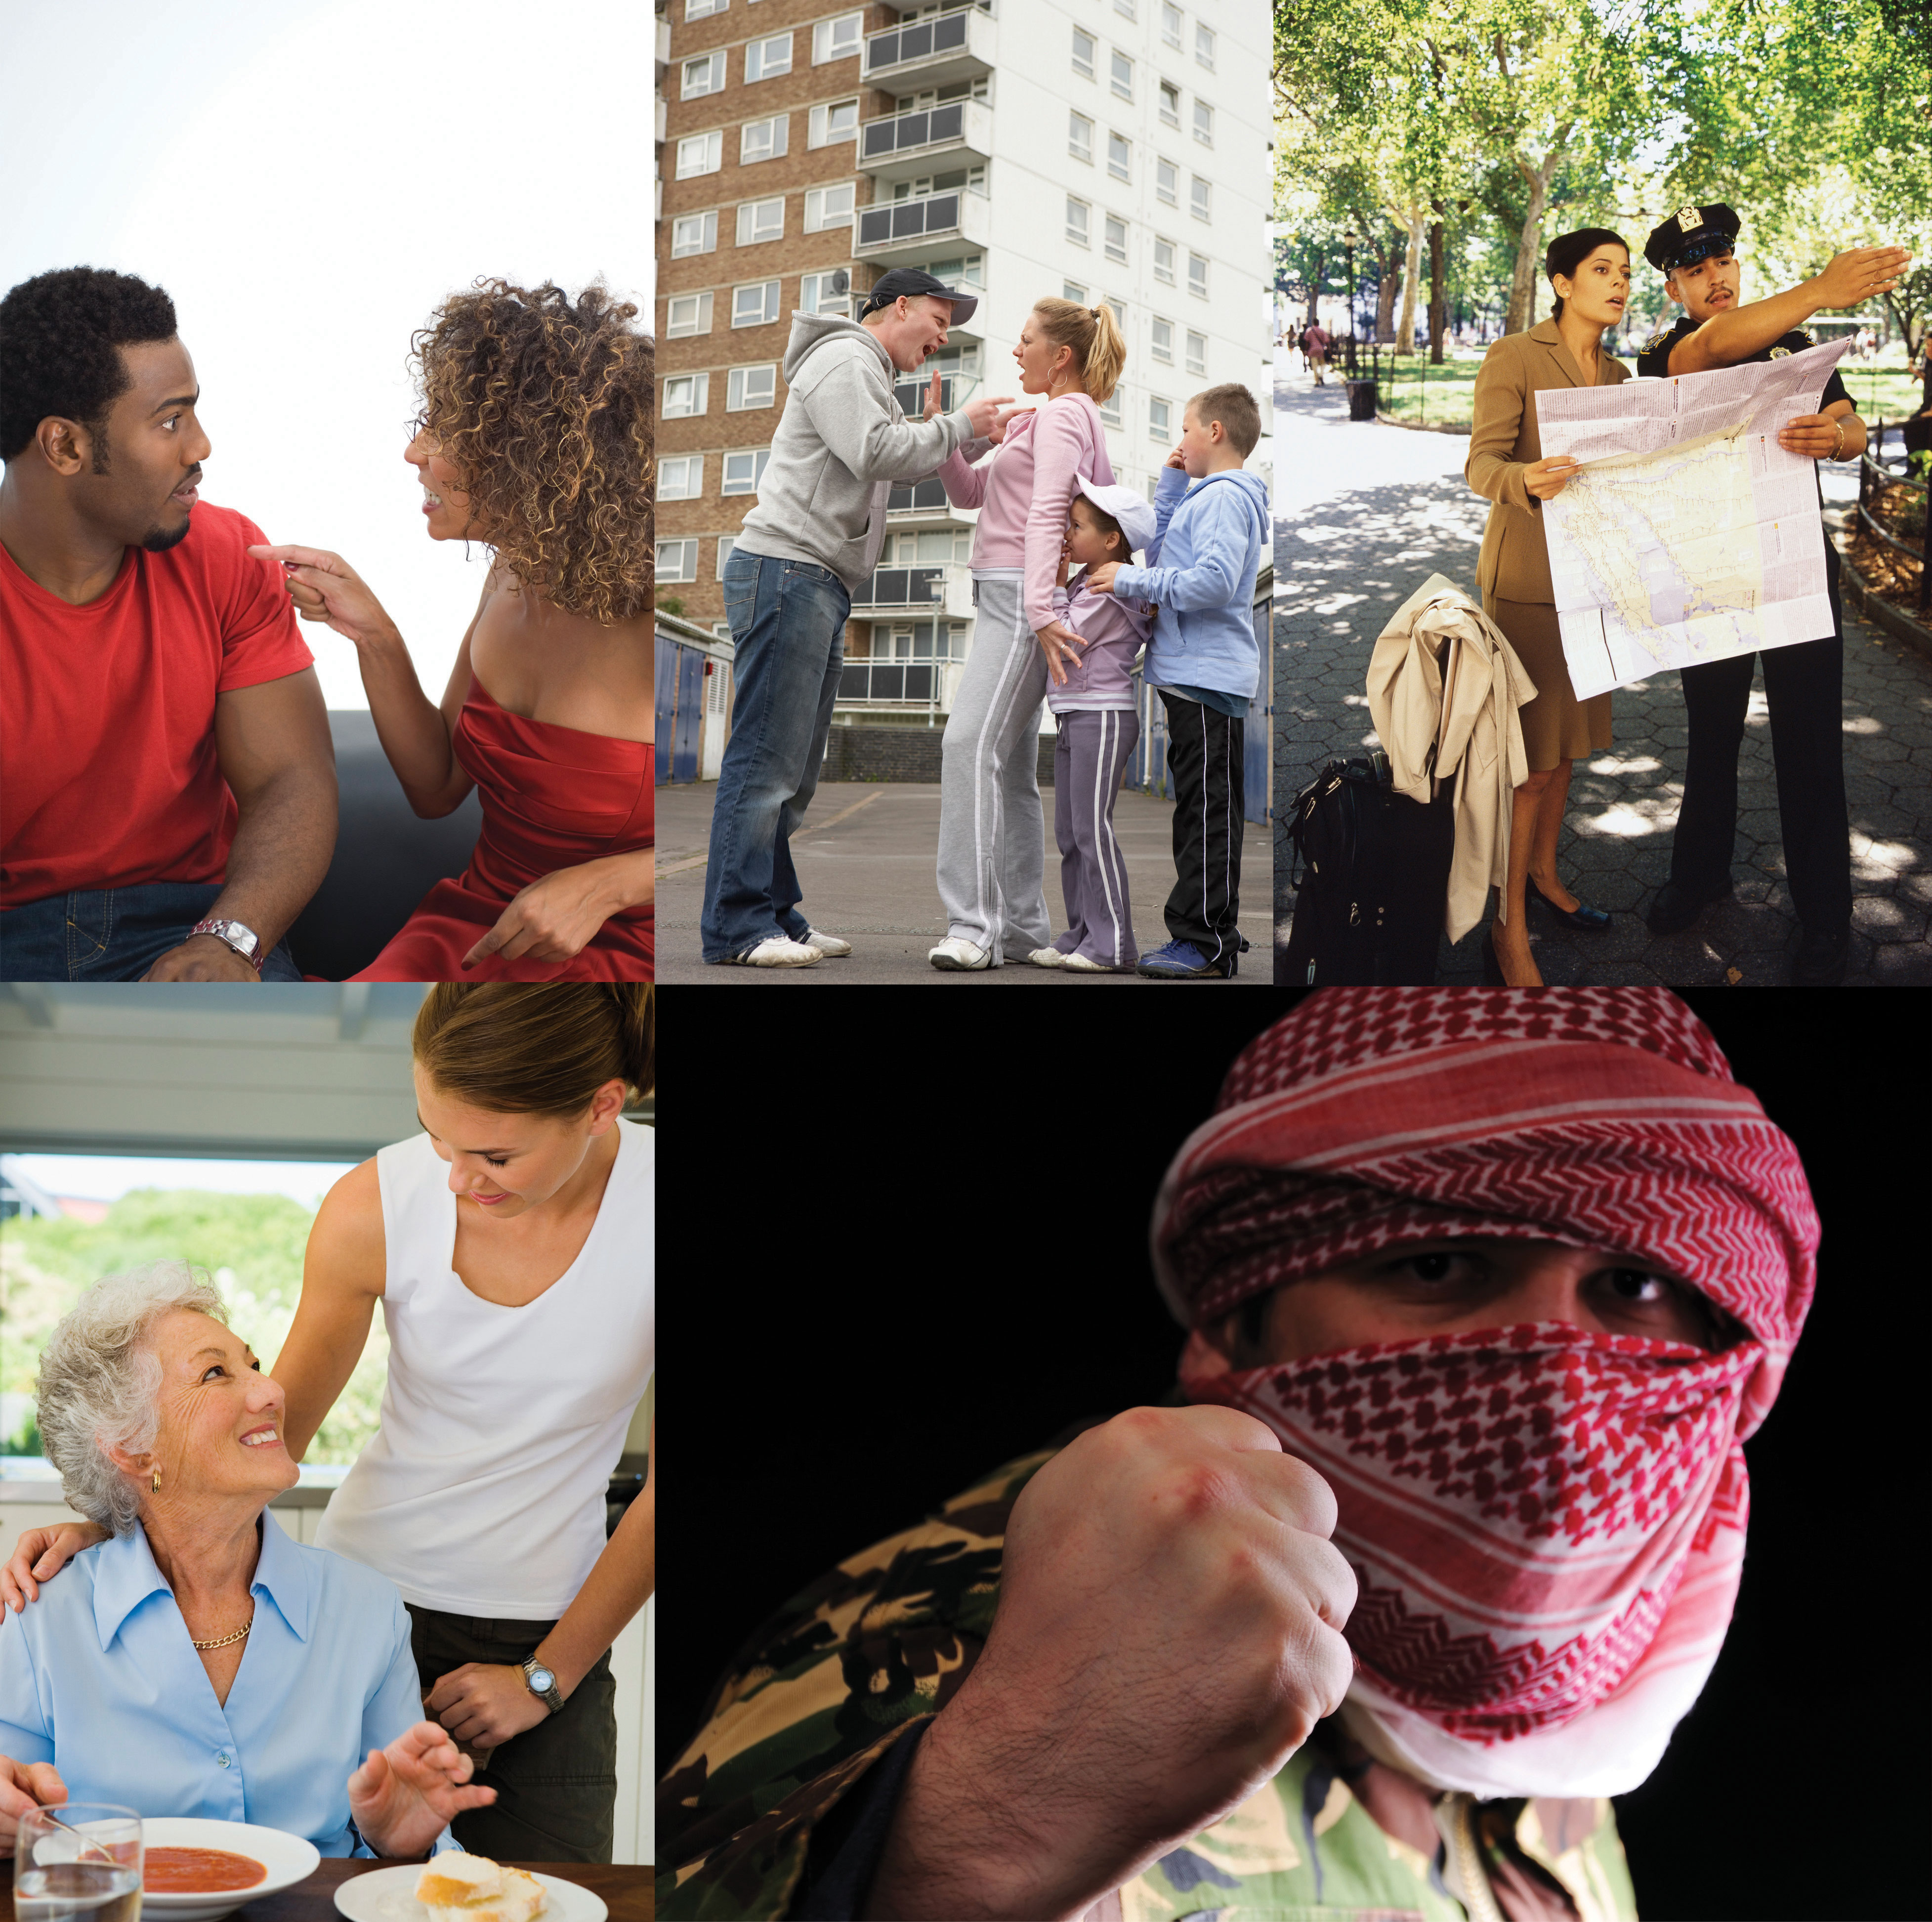 Collage: A woman yelling at her boyfriend, a man yelling at his family, a cop giving a woman directions, an old woman smiling up at a younger woman, a man with with a balaclava holding his fist up